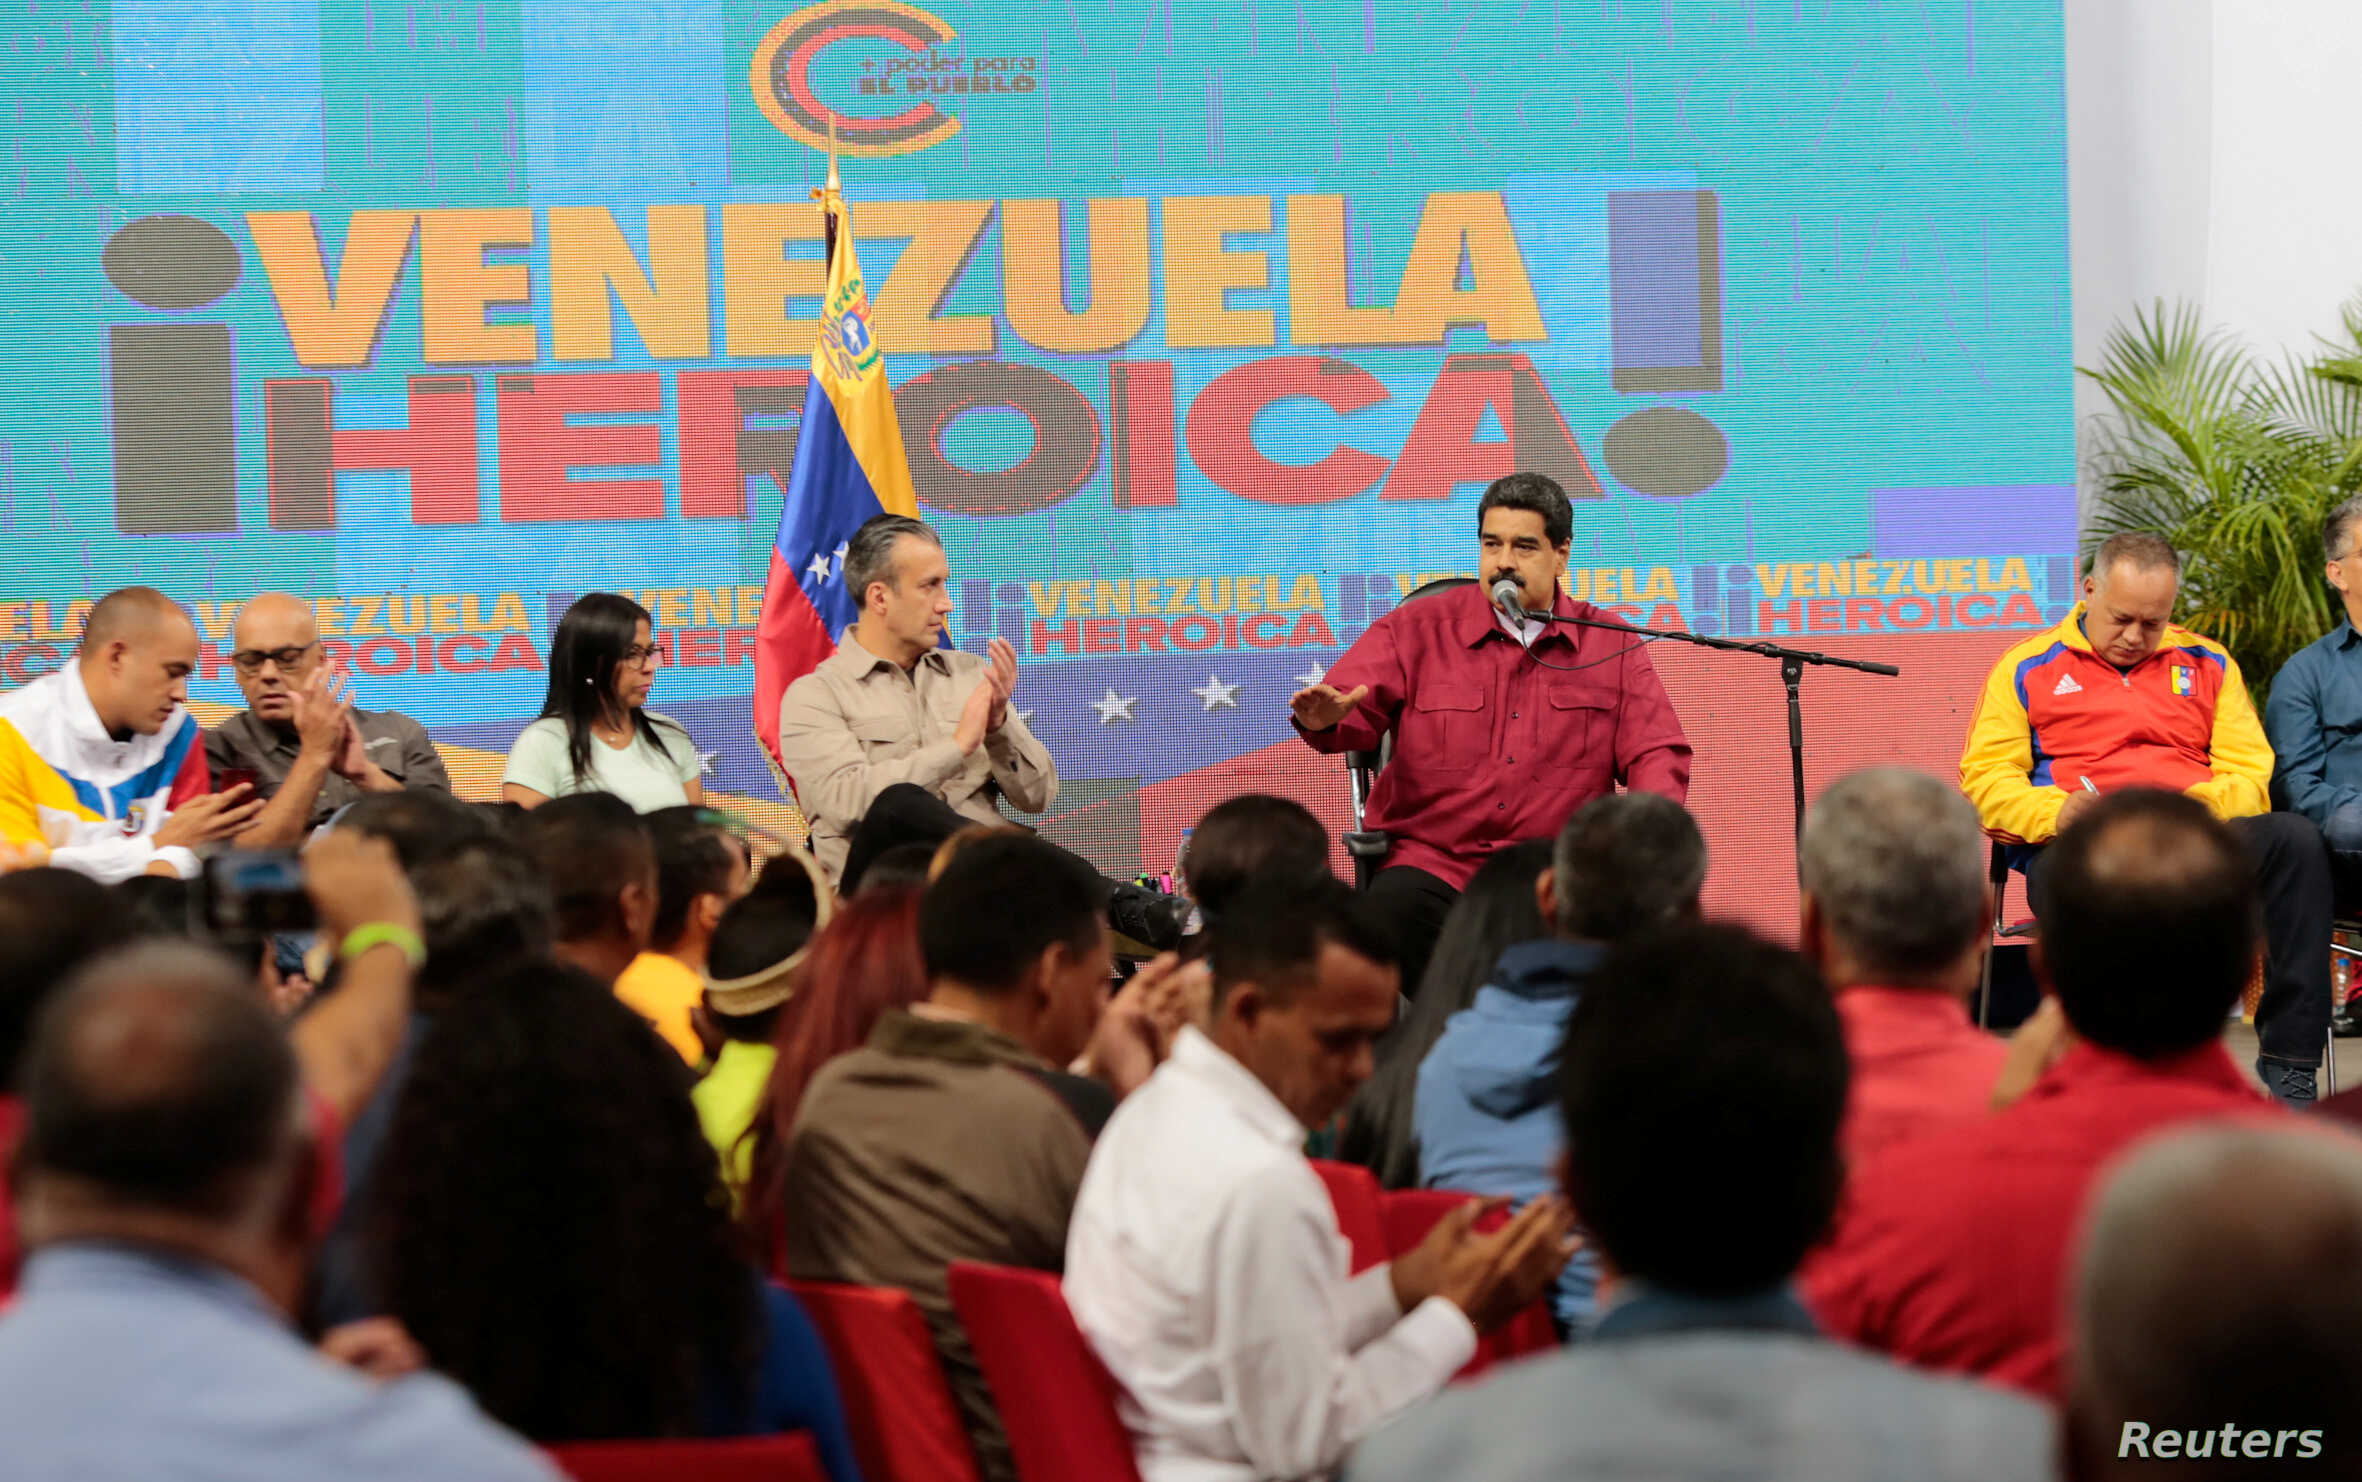 """Venezuela's President Nicolas Maduro, 2nd right, speaks during a meeting with members of the Constituent Assembly in Caracas, Venezuela, Aug. 2, 2017. The text in the back reads, """"Heroic Venezuela."""""""